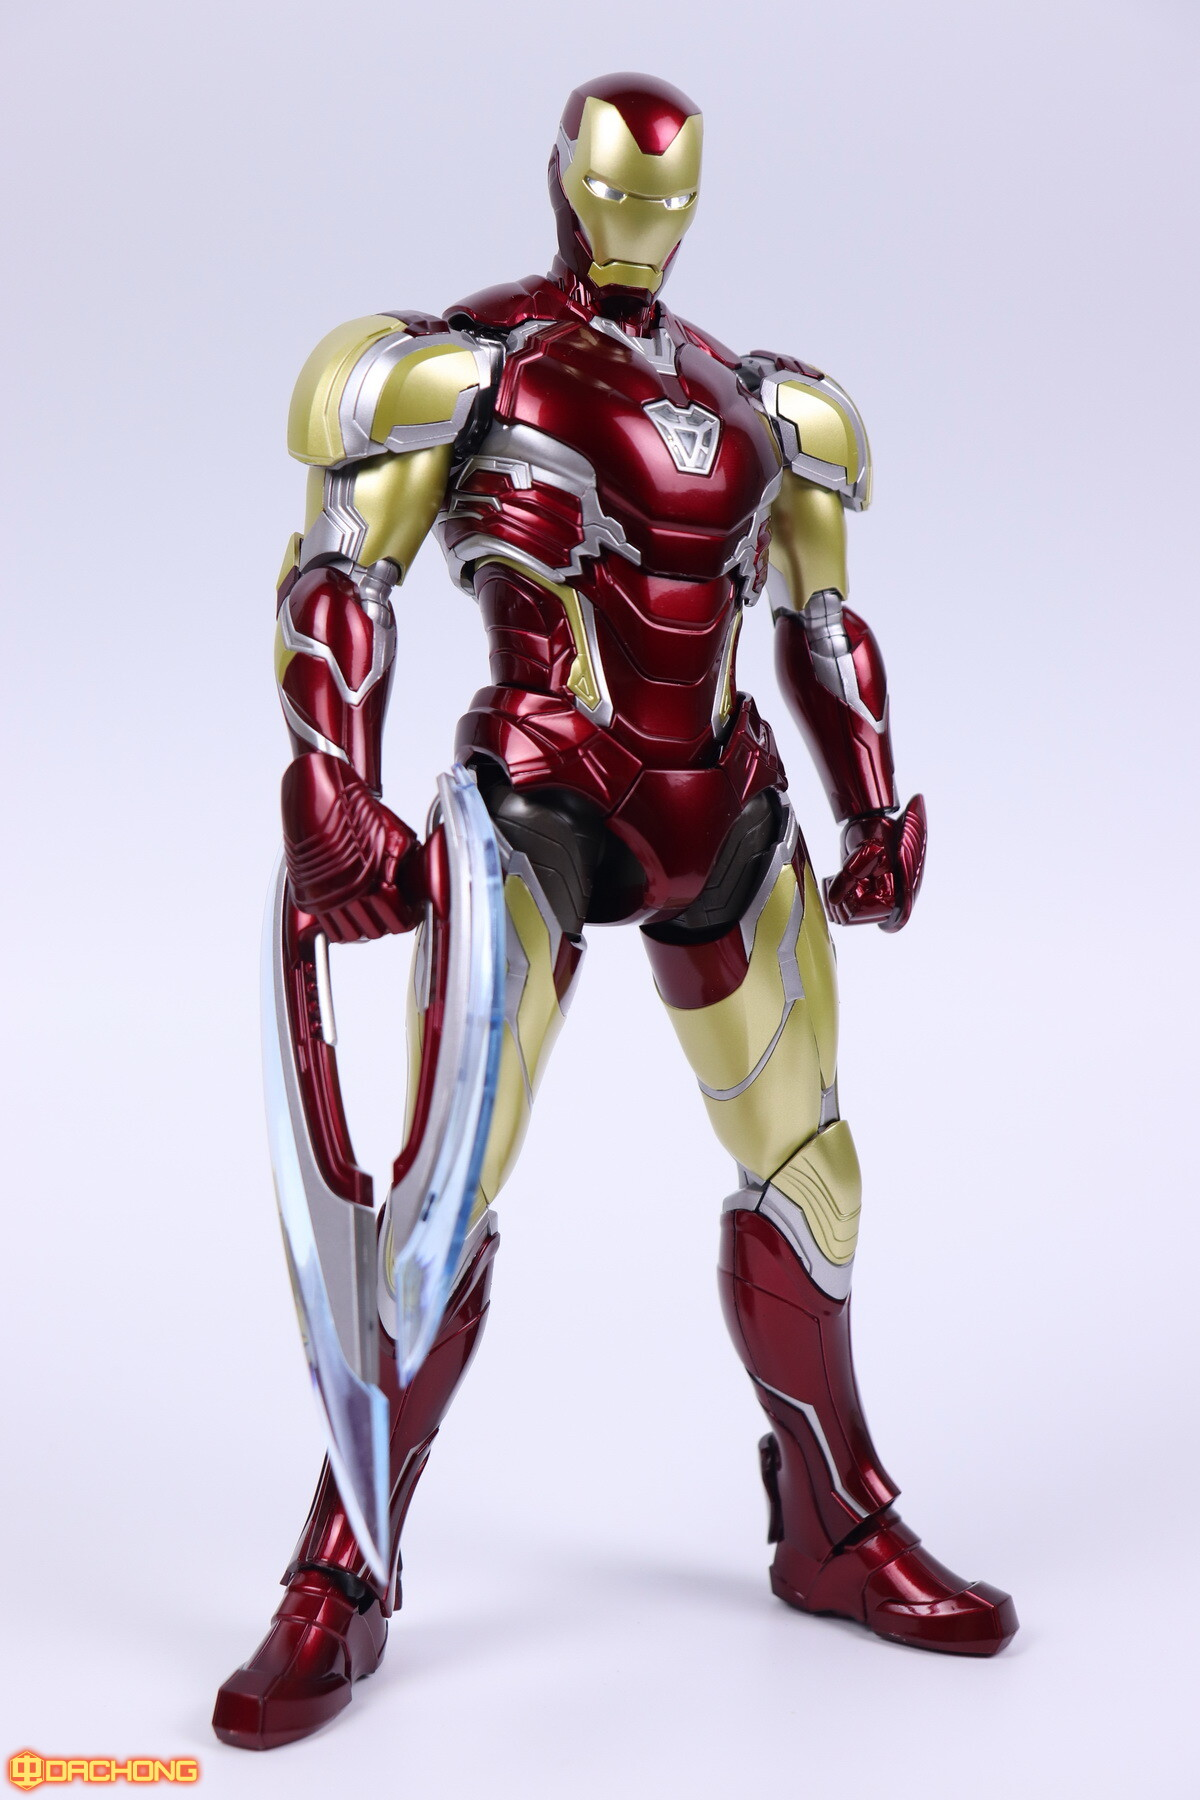 S498_2_e_model_ironman_mk85_dx_117.jpg